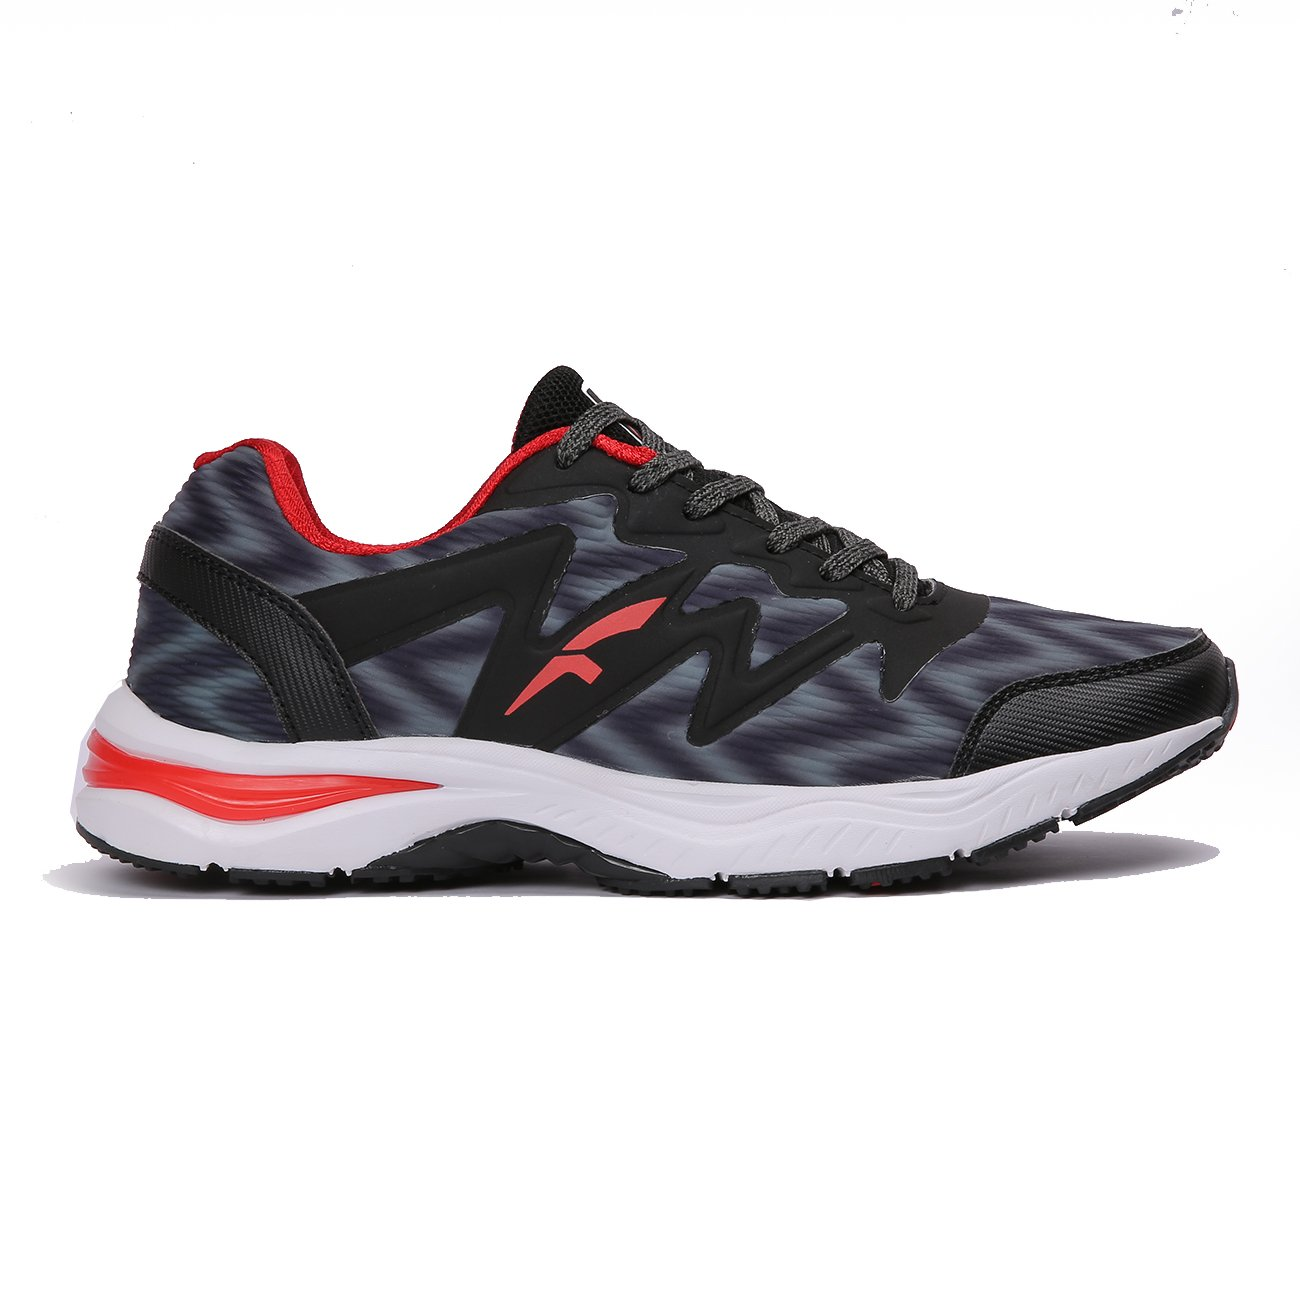 3a0e2fcc0e3 Furo (By Red Chief) Black Men s Running Shoe (R1021 245)  Buy Online at Low  Prices in India - Amazon.in